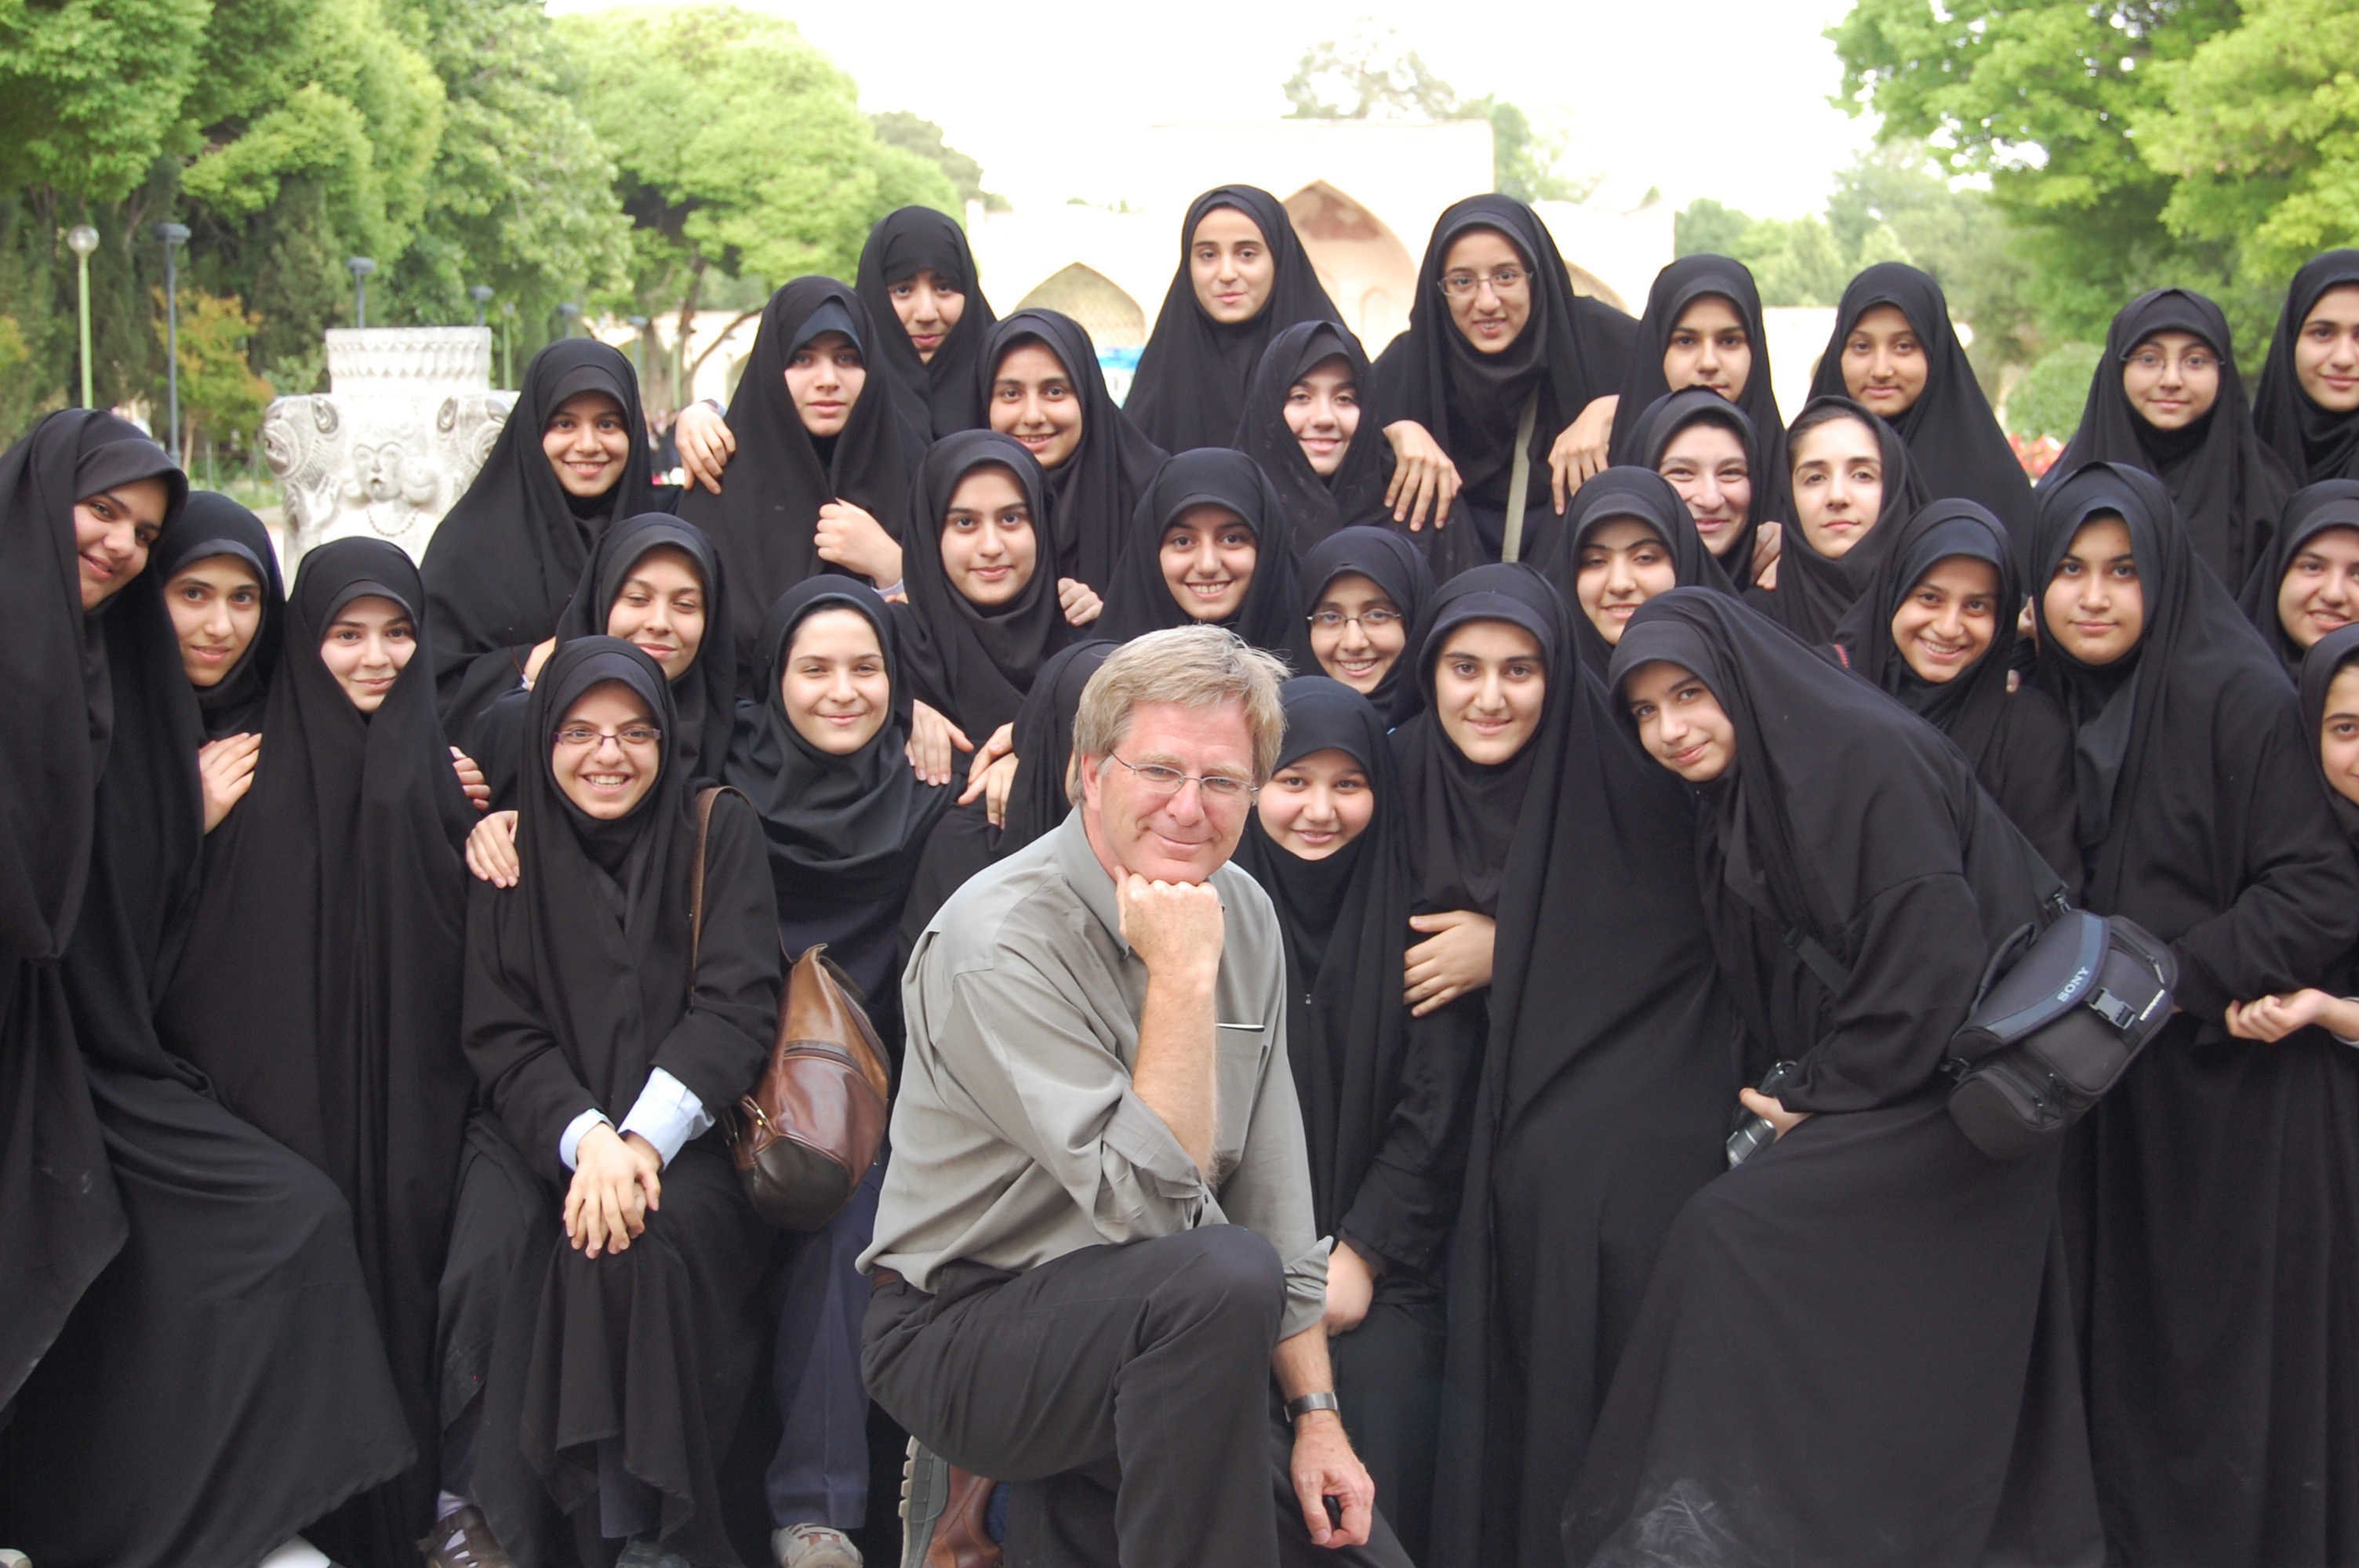 With schoolgirls in Iran